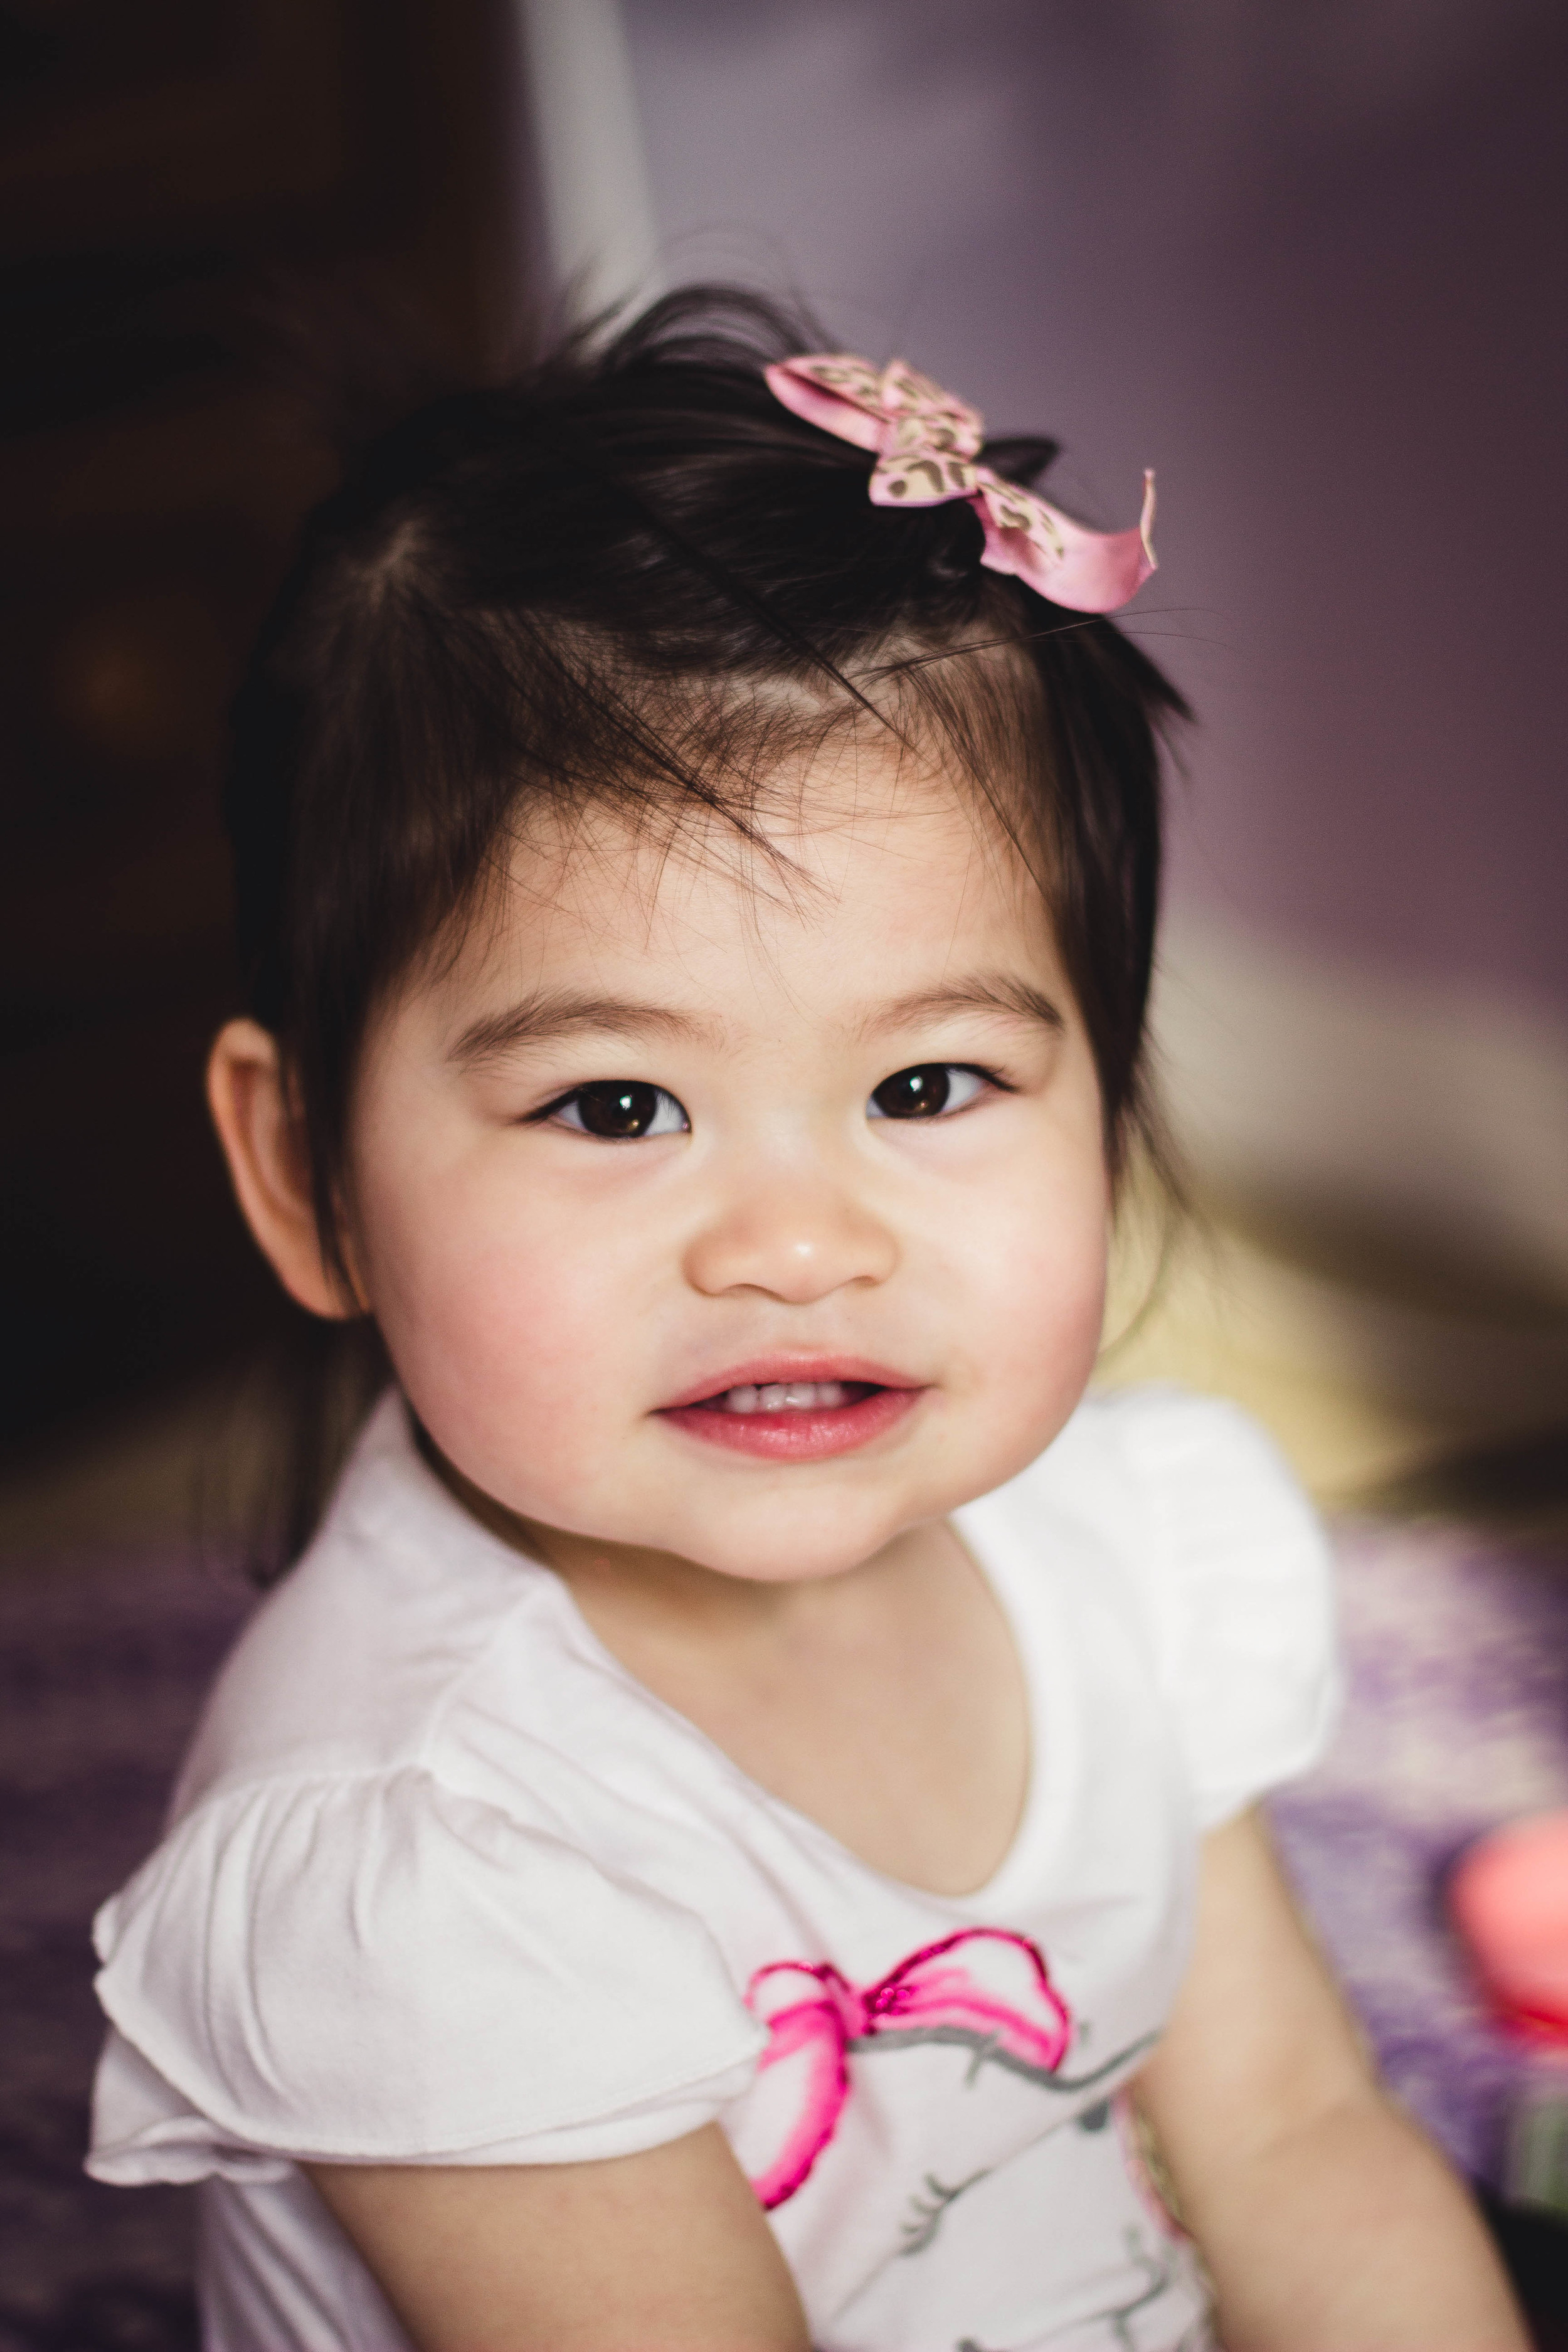 Selah at 1.5 years old portrait | by fit for the soul